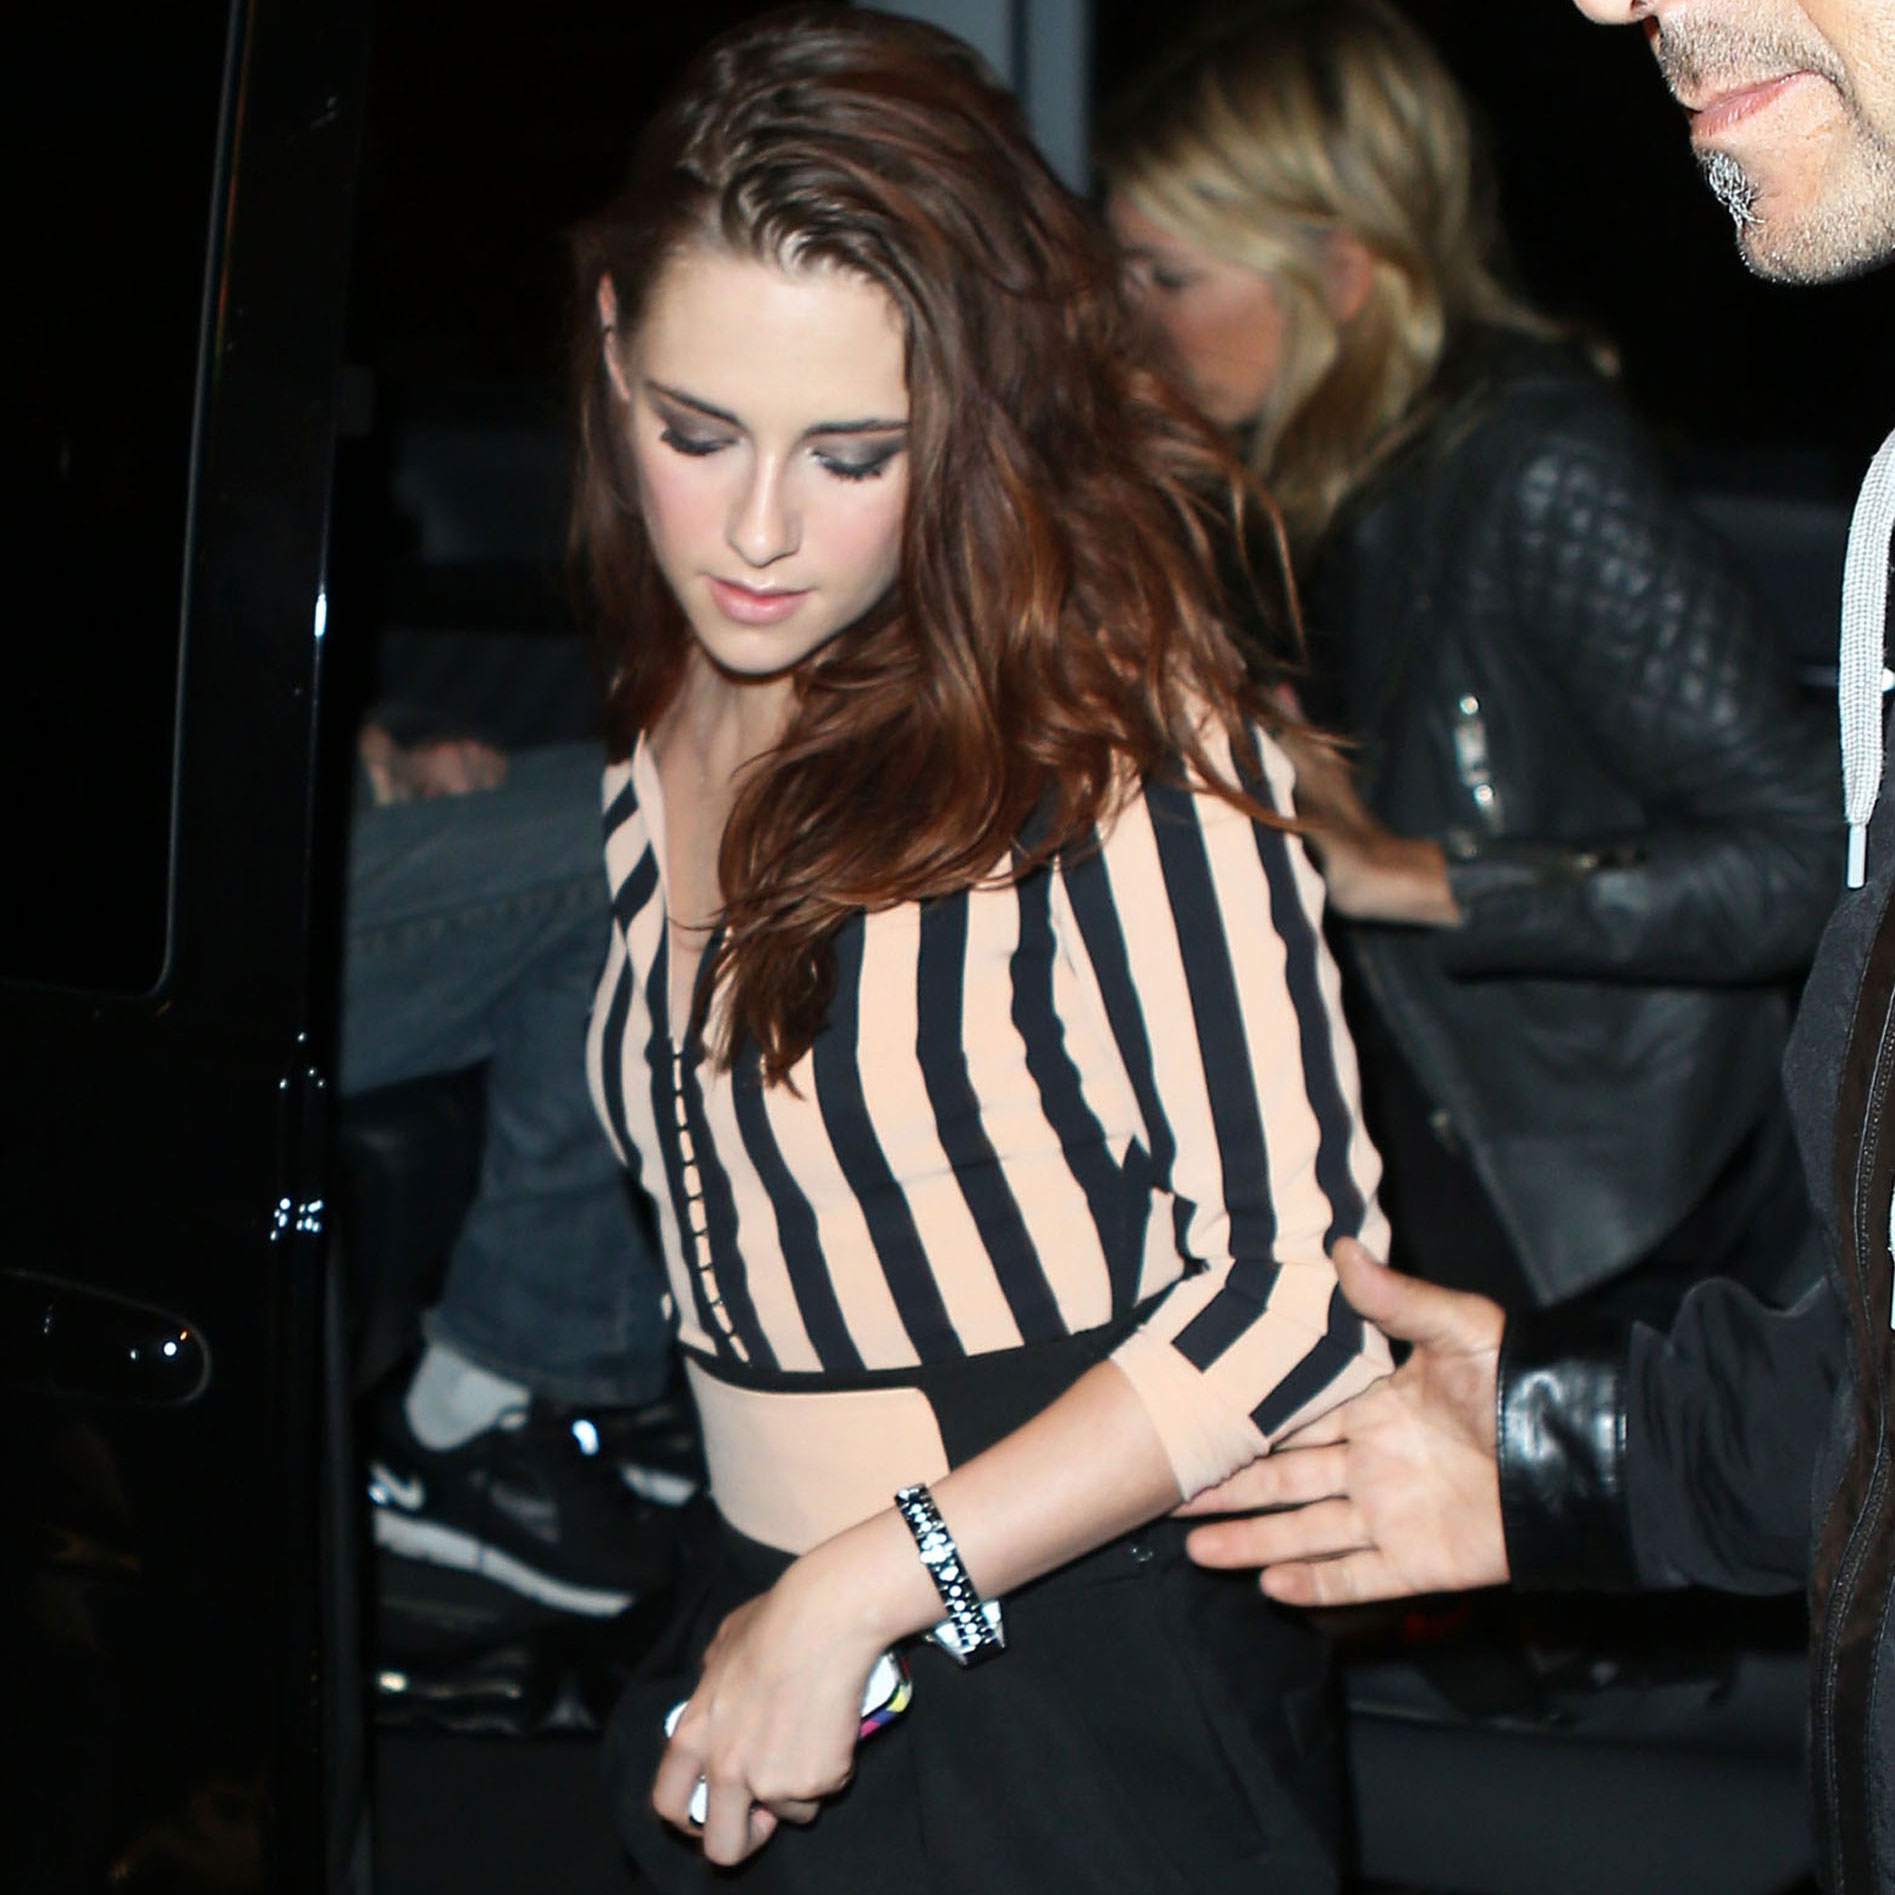 Kristen Stewart hit the town in Paris in a cream and black striped number, the second outfit to showcase her penchant for a monochromatic palette.